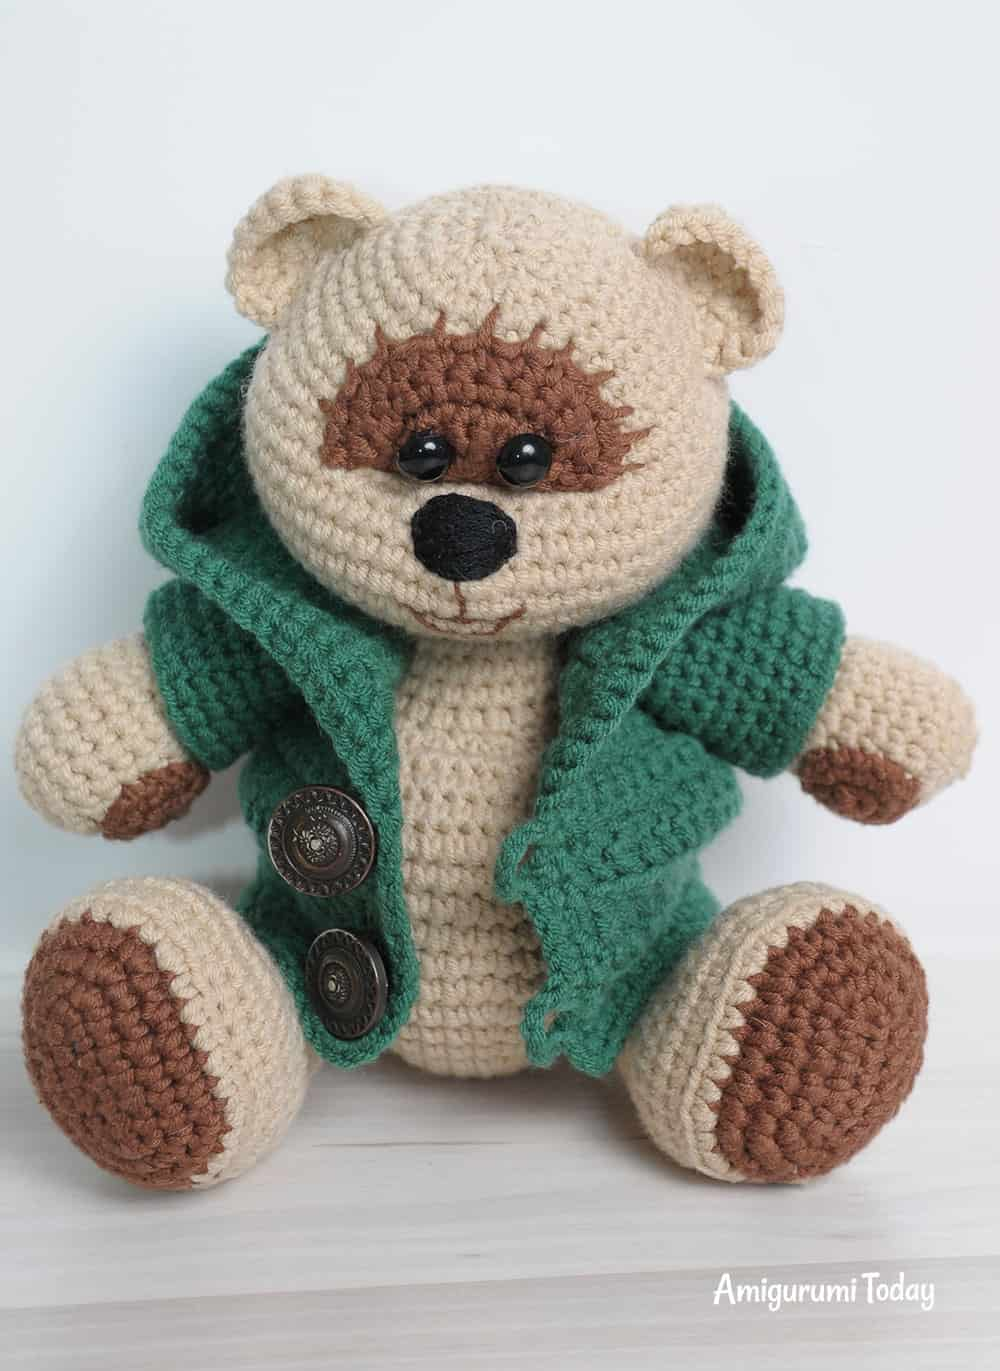 Honey teddy bear boy amigurumi pattern